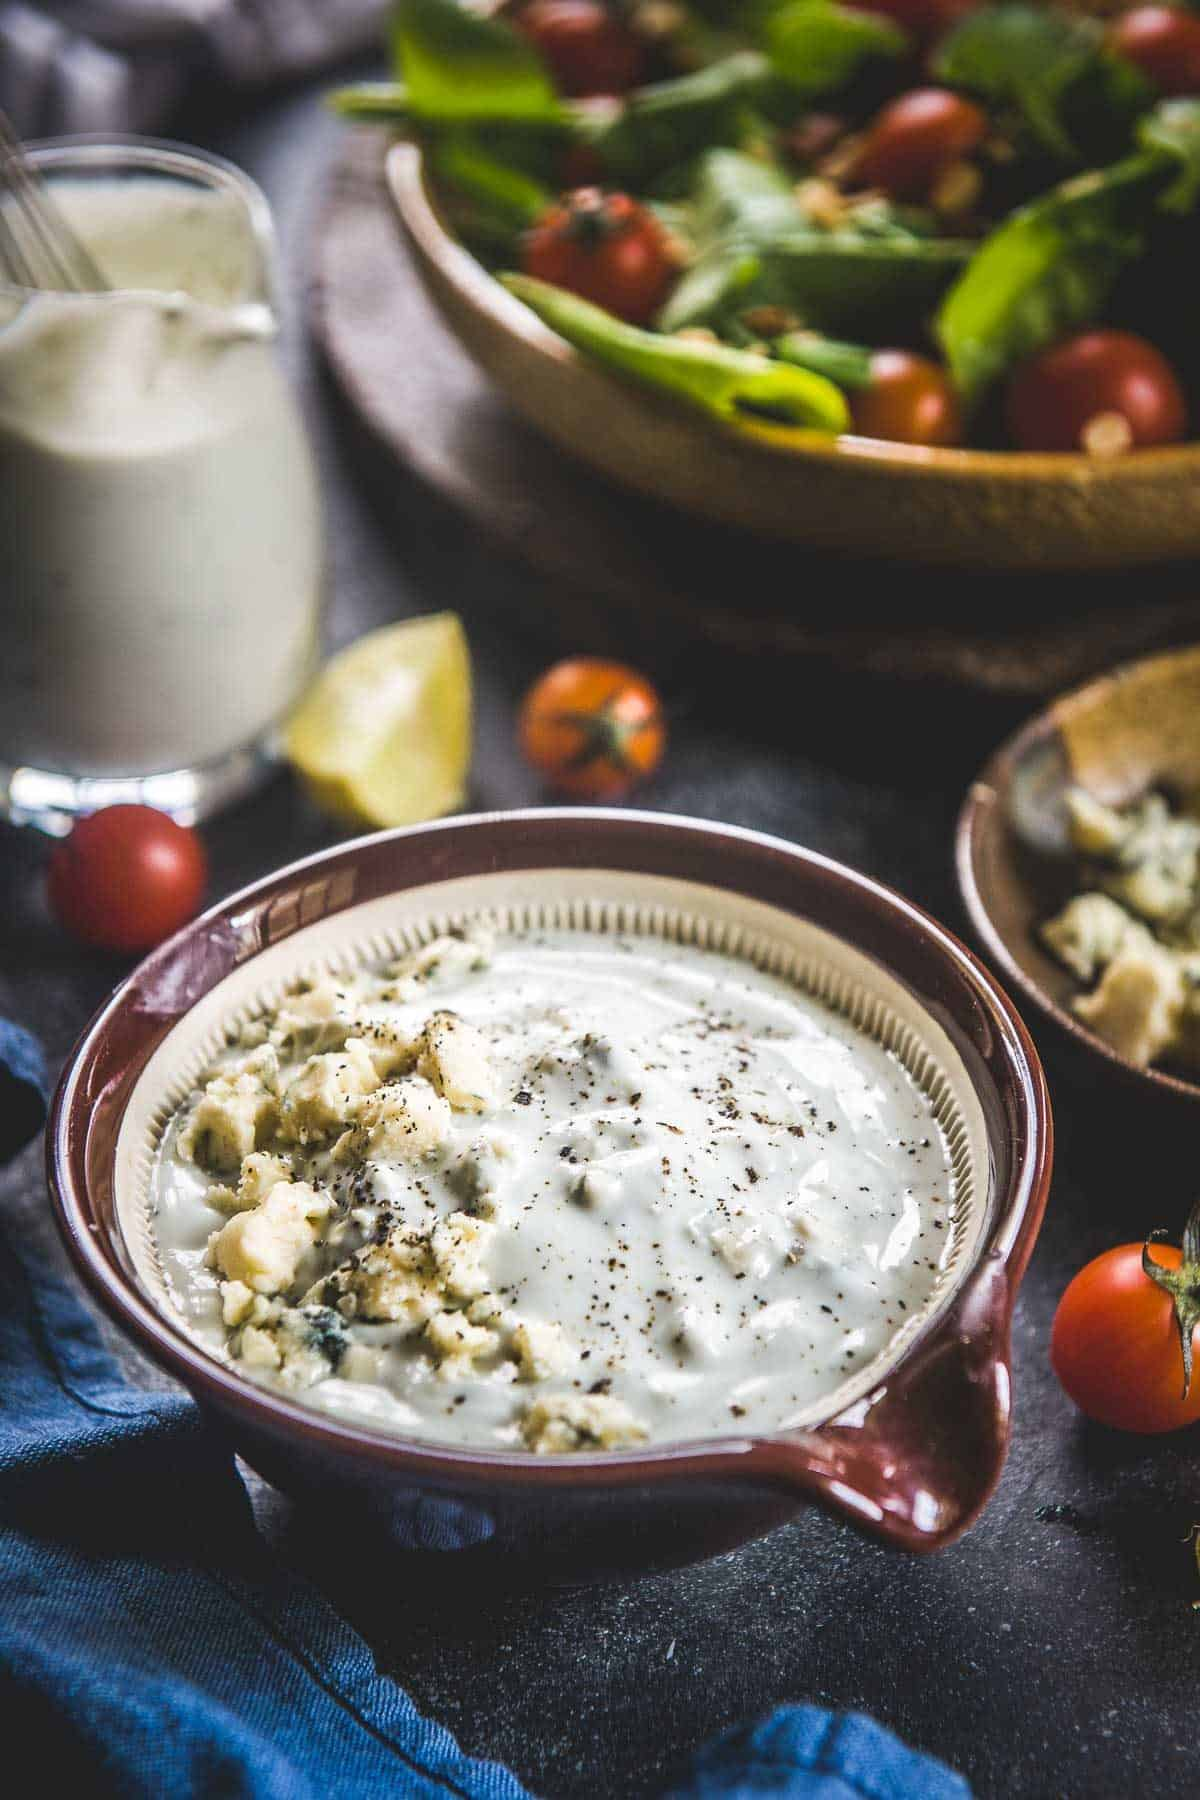 Blue Cheese Salad Dressing served in a bowl.